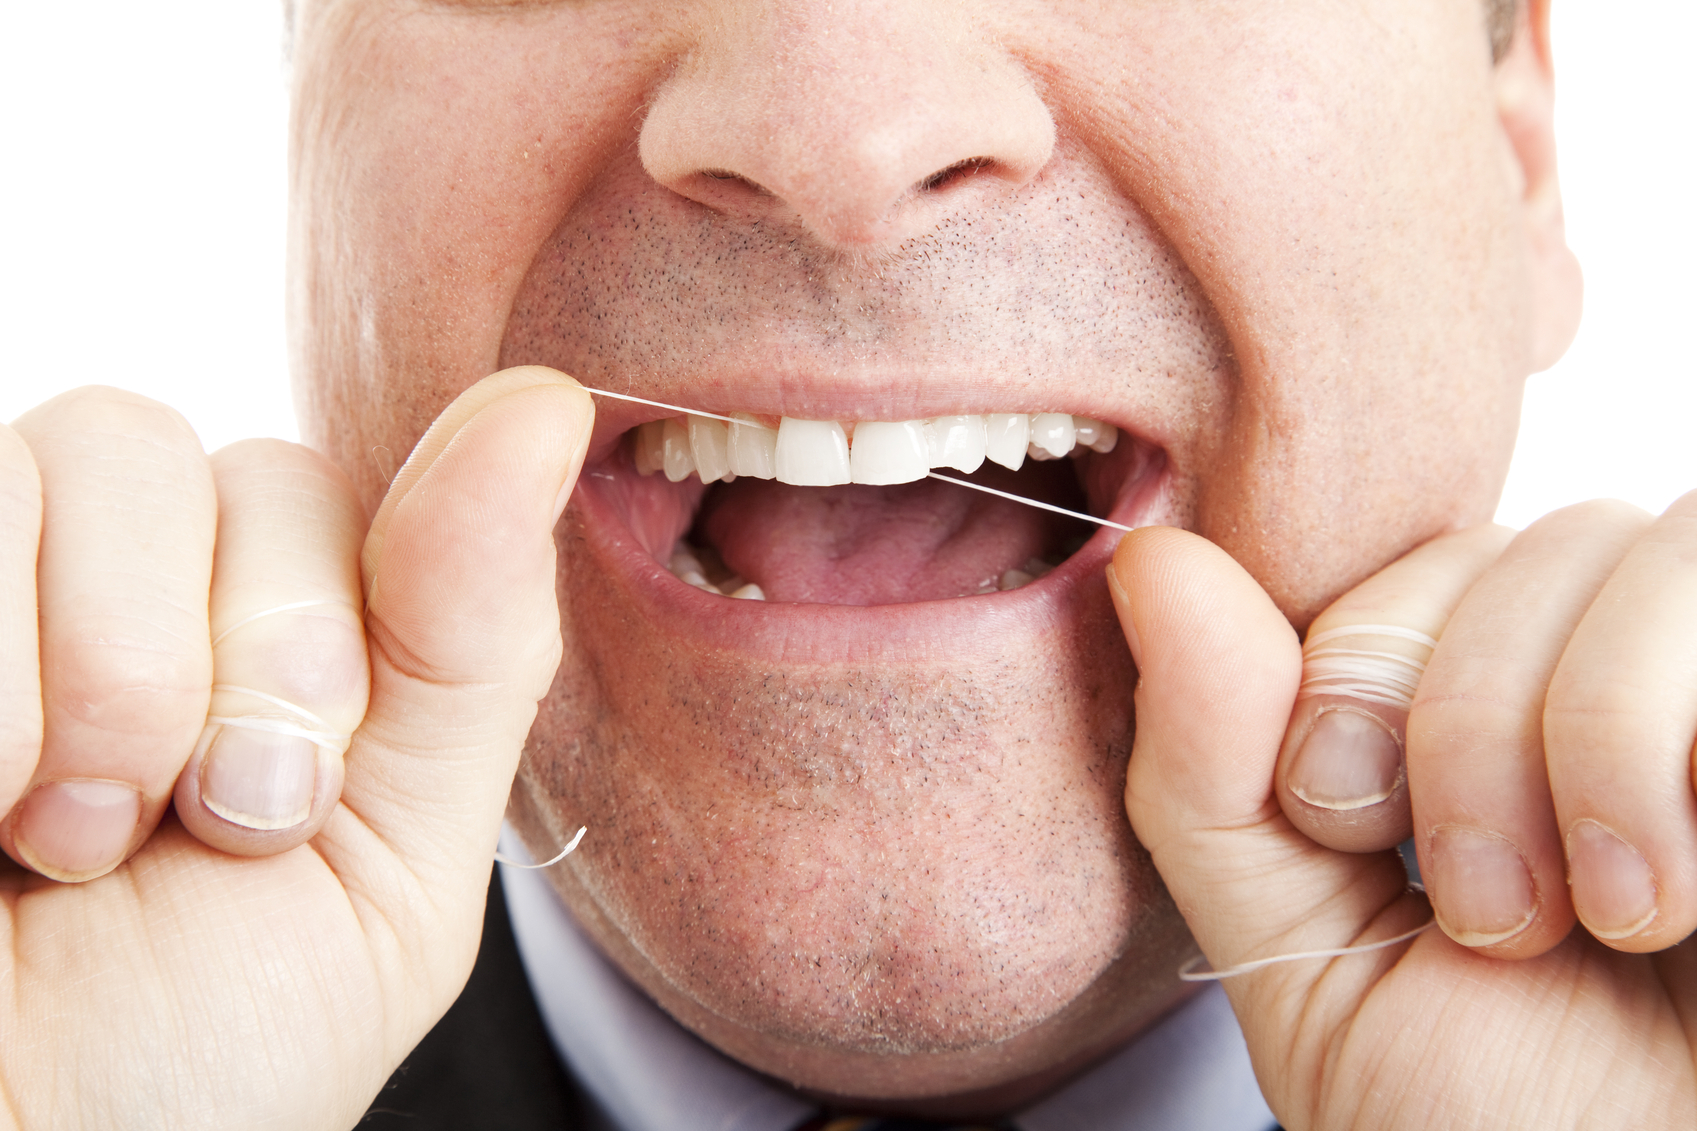 Flossing urged, despite weak evidence it works